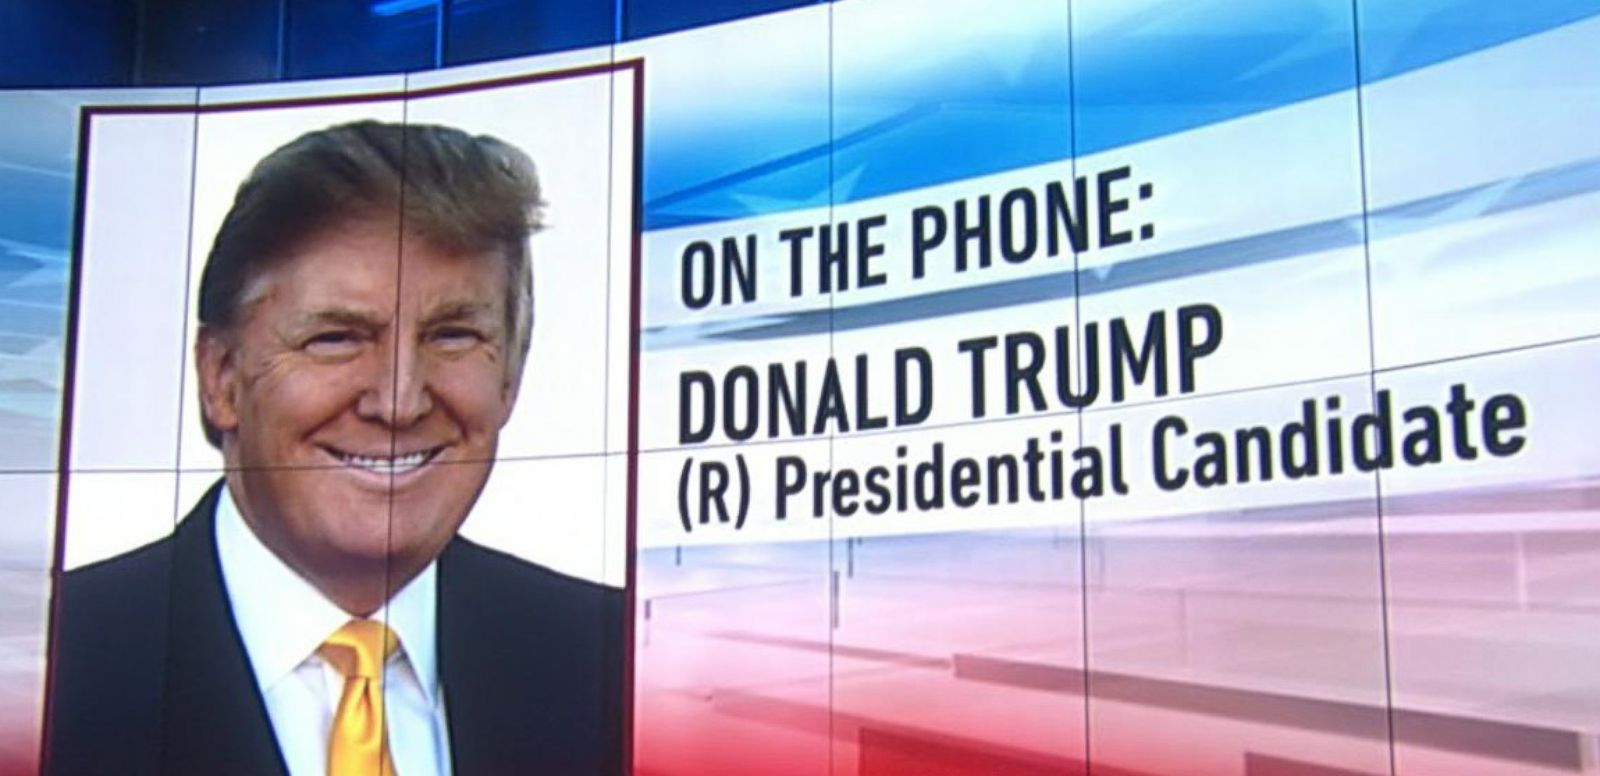 VIDEO: Donald Trump Says He Would Bring Back Waterboarding